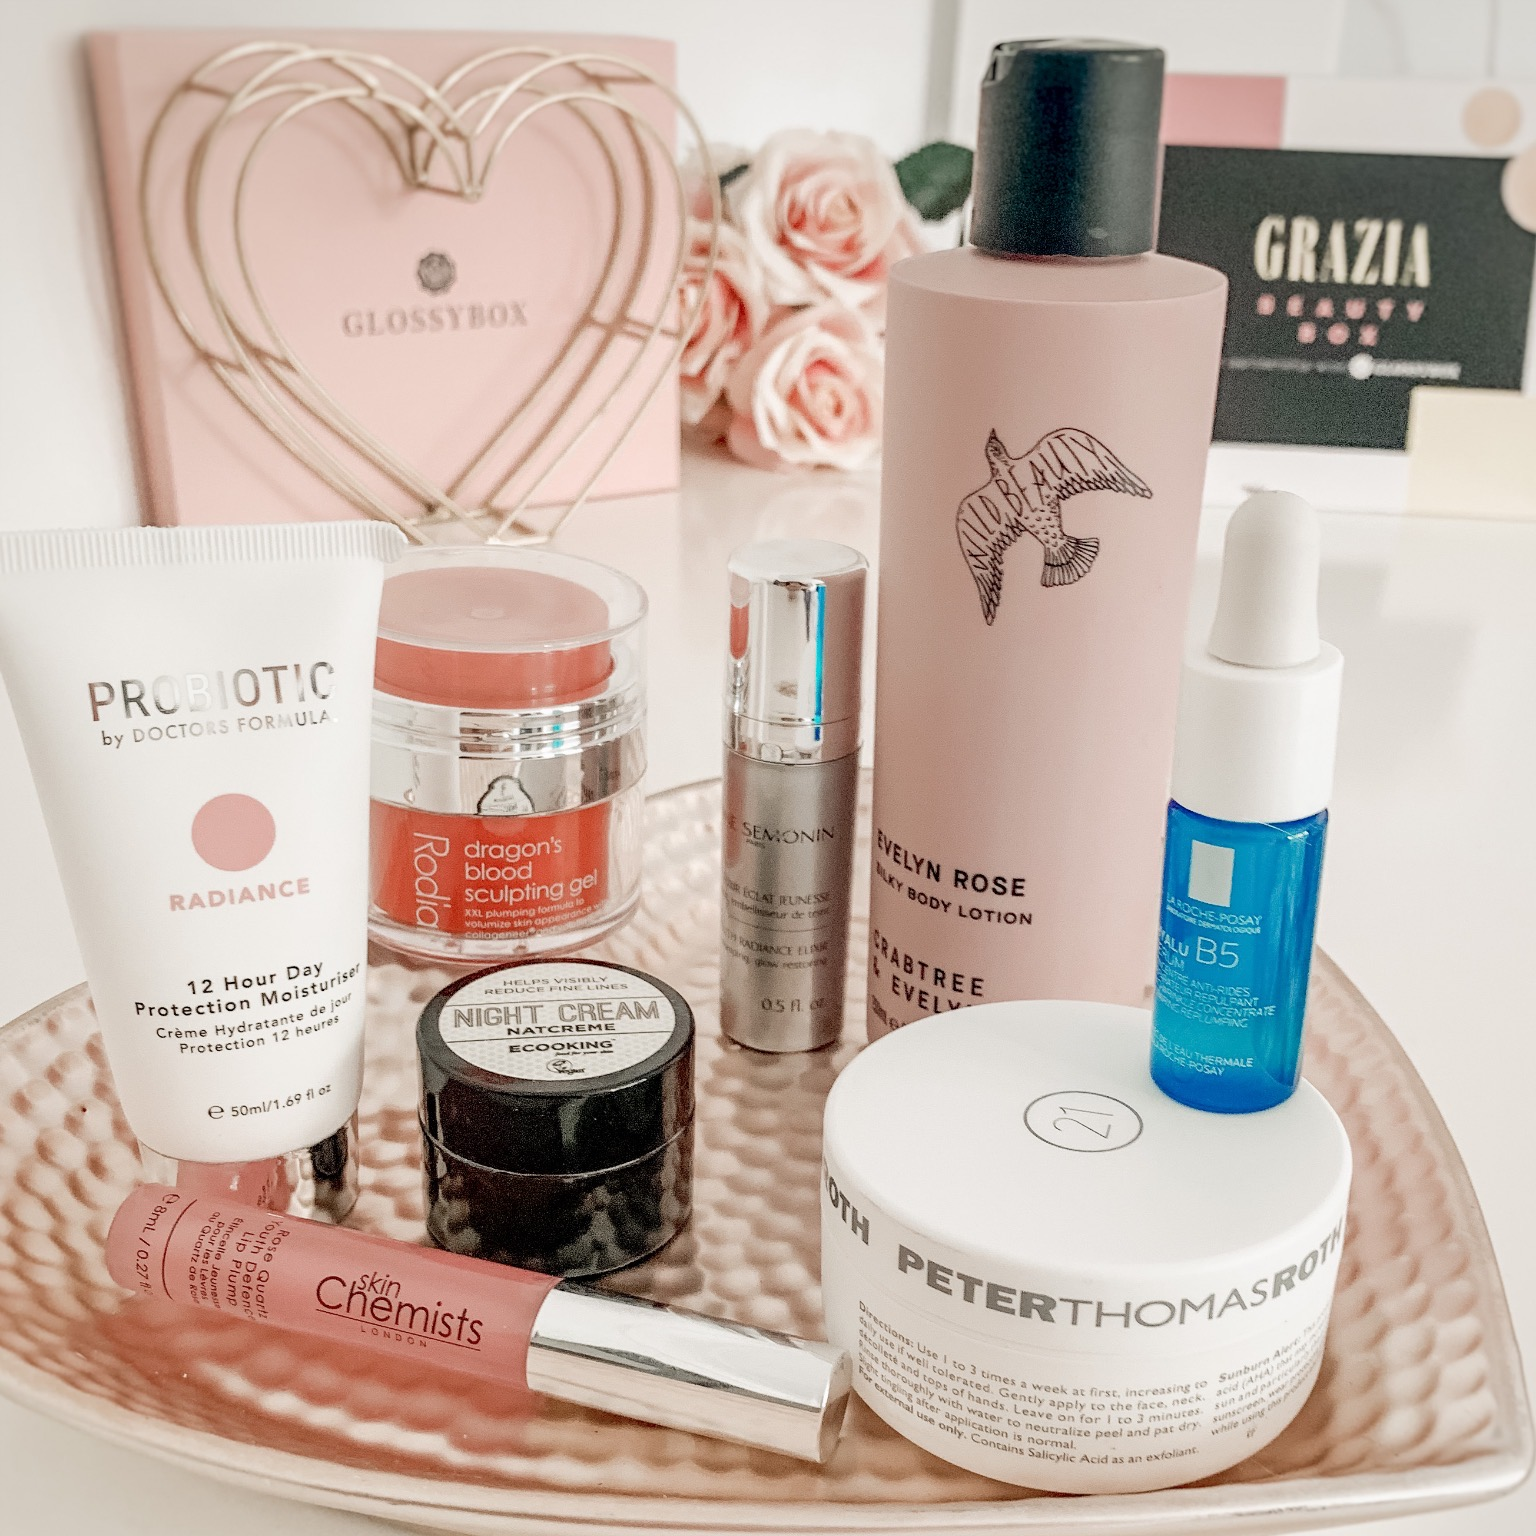 Grazia Glossybox Beauty Box Review